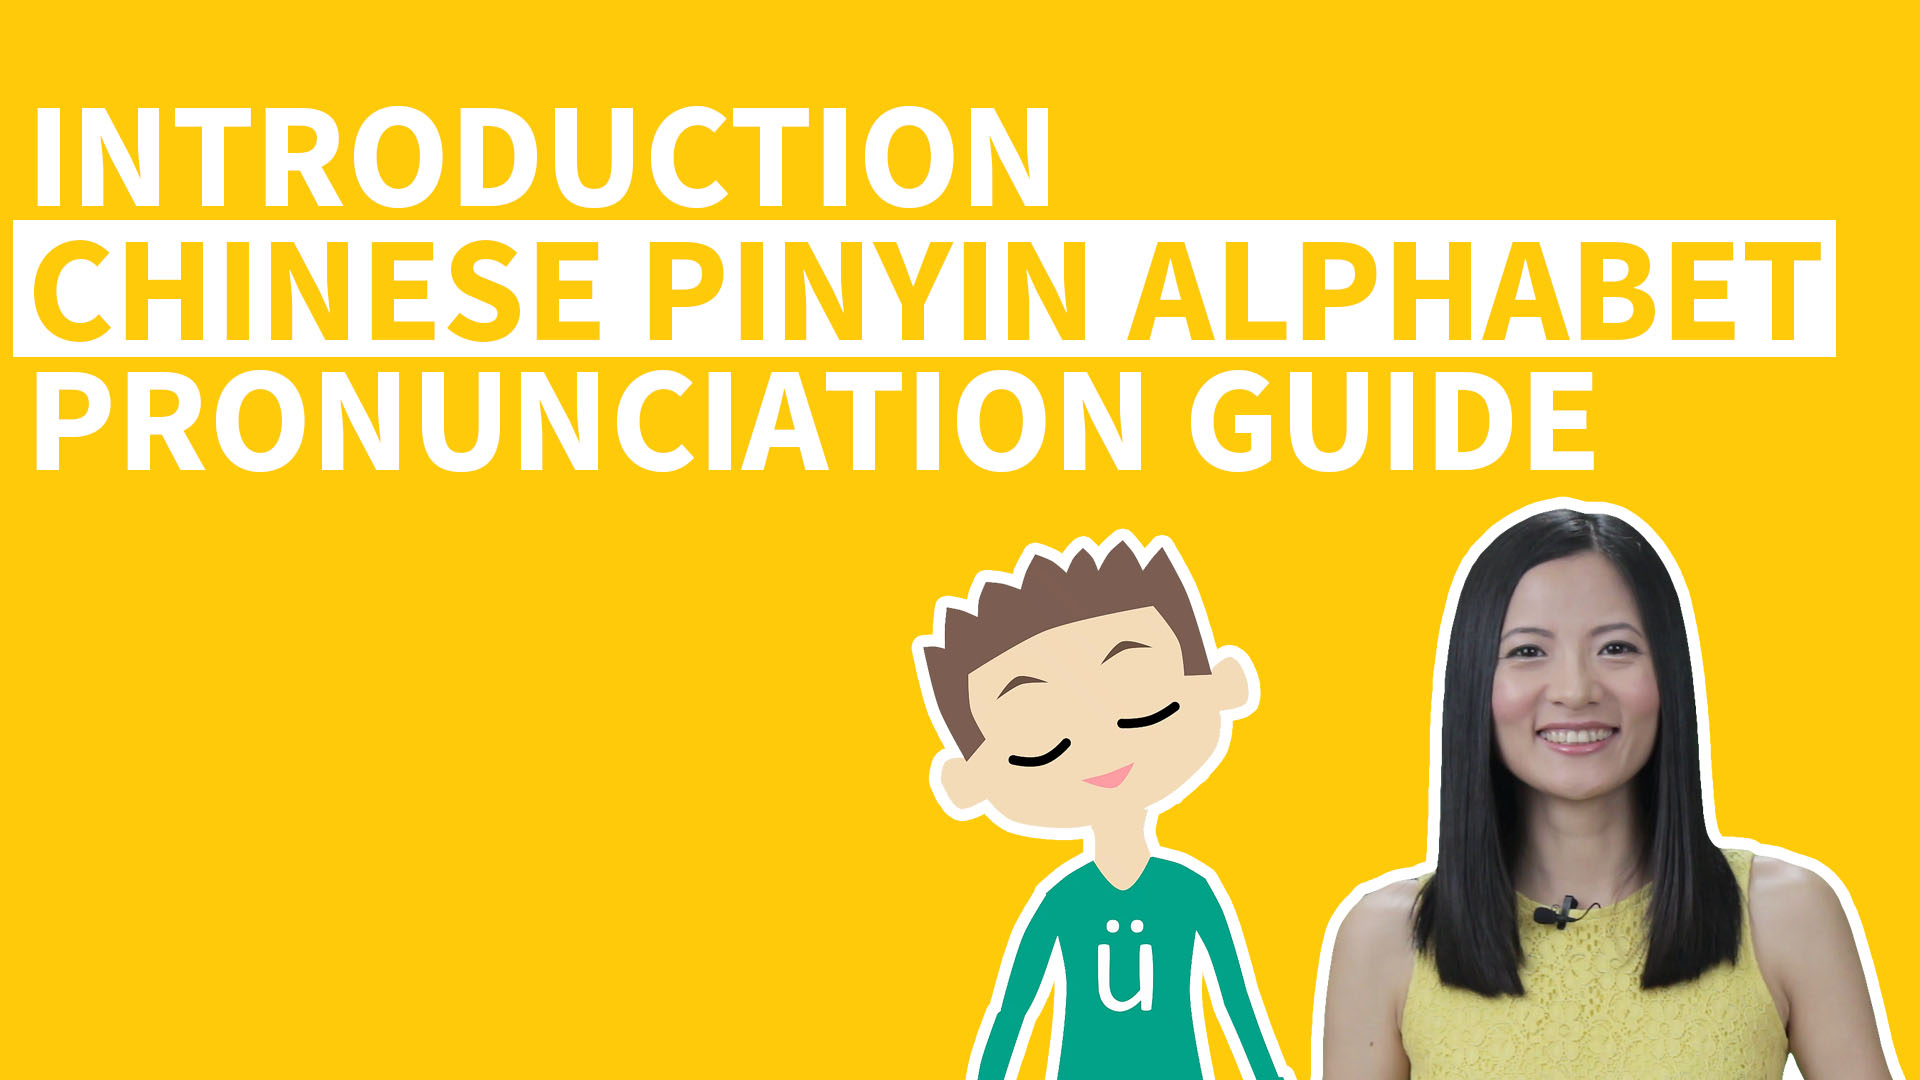 Chinese Pronunciation Guide for Beginners - Pinyin